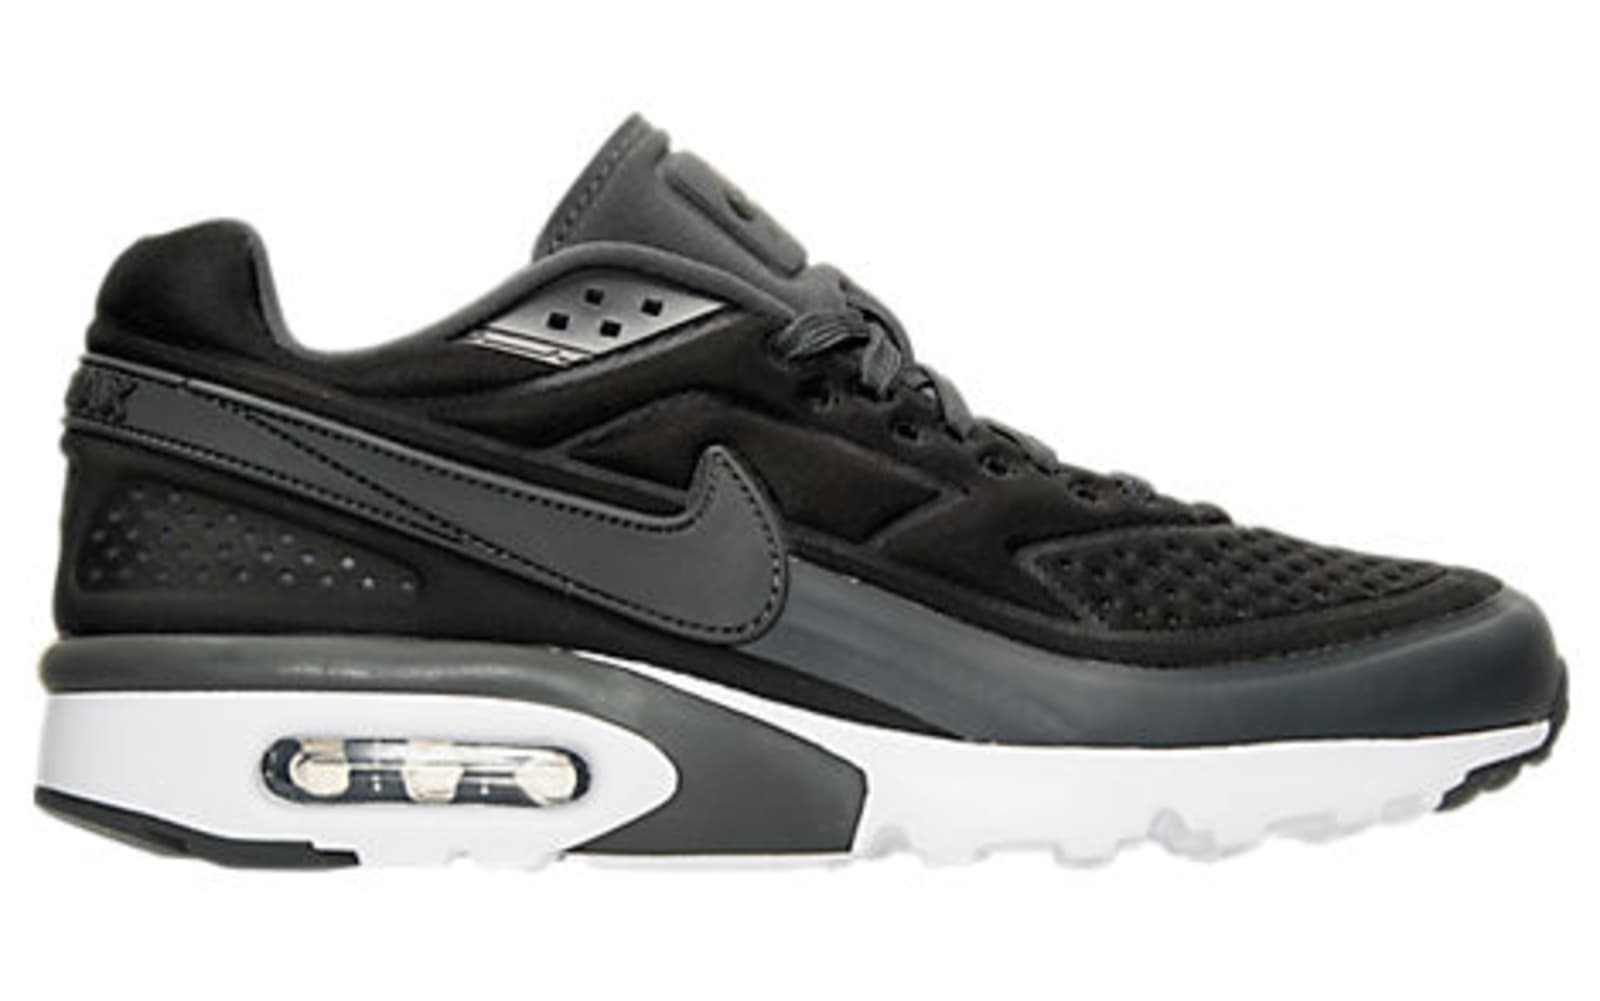 Nike Air Max BW Ultra SE Sneaker Sales Feb. 26, 2017